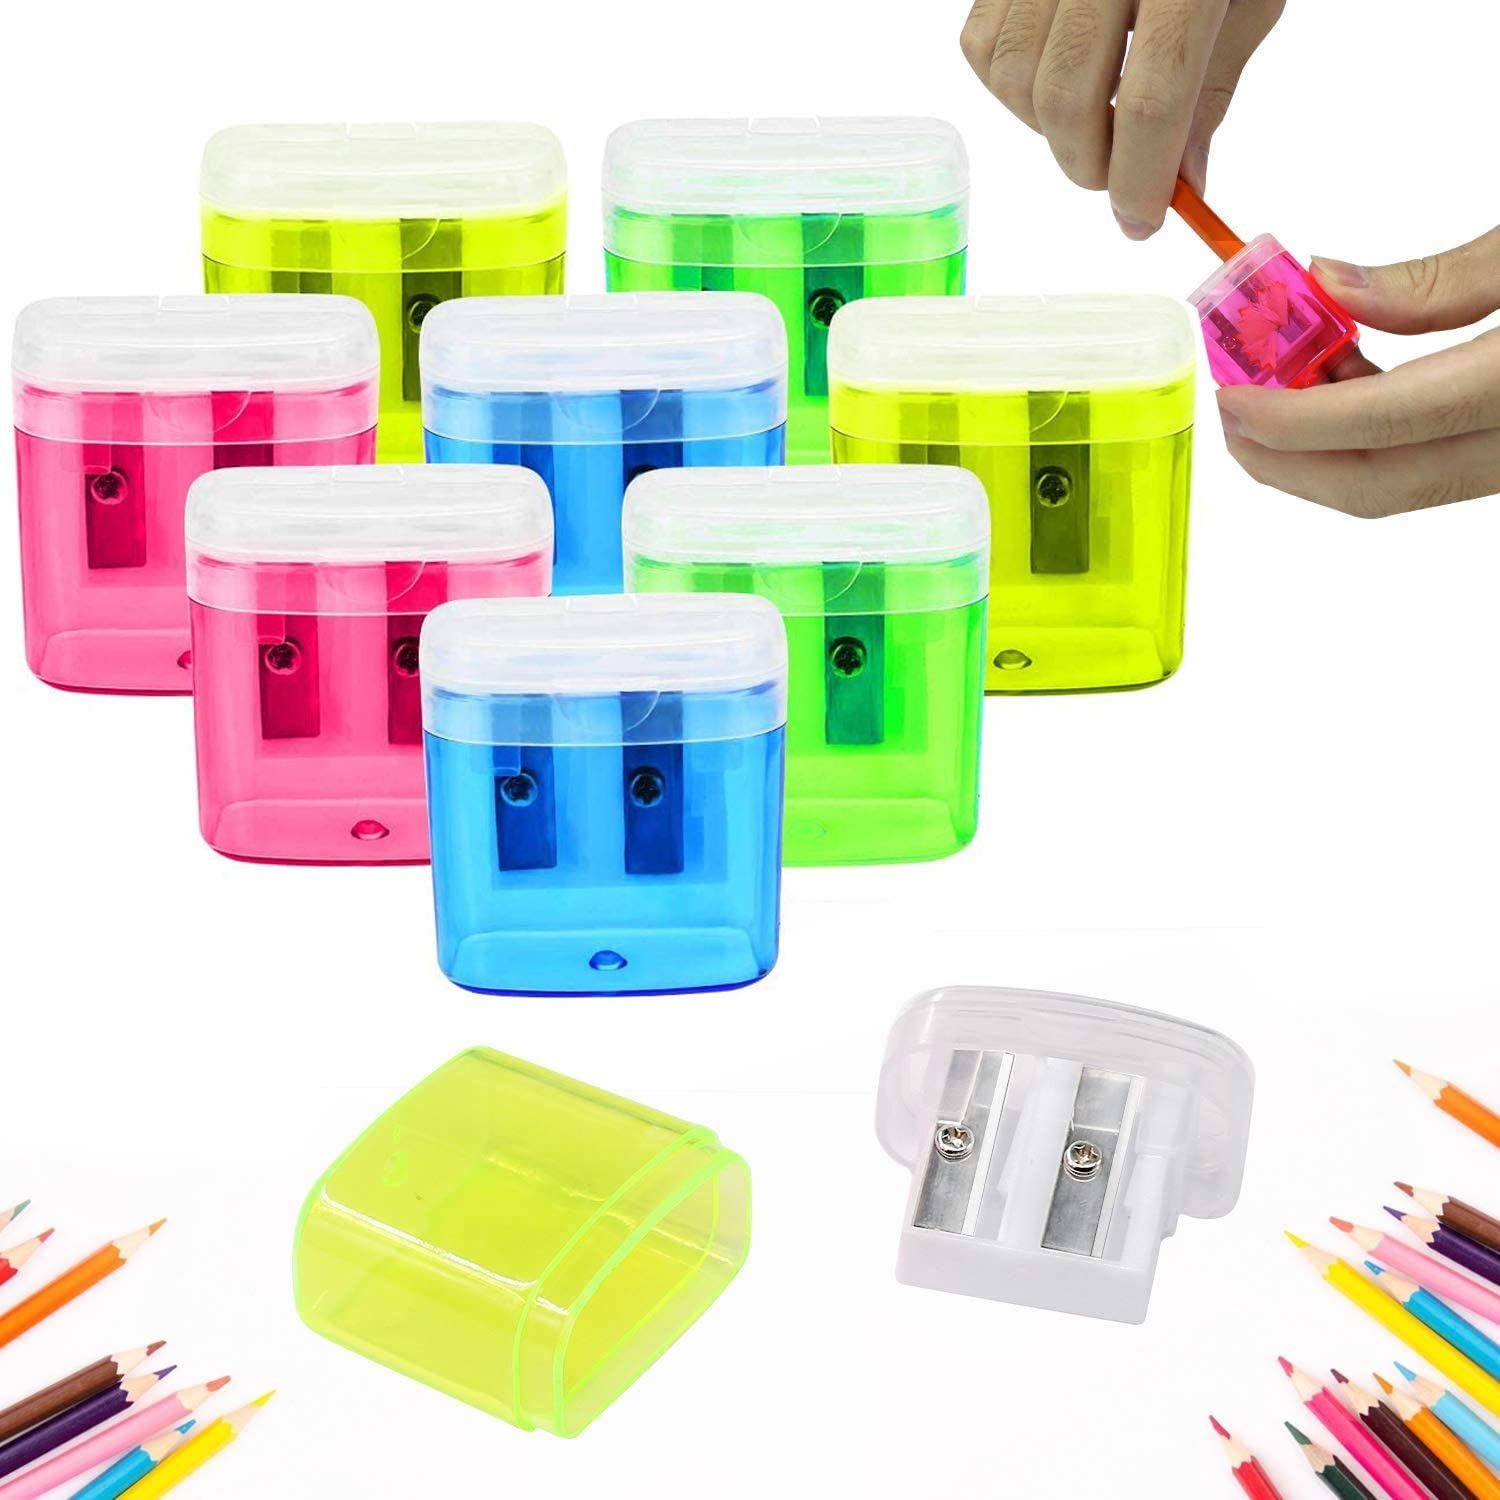 24 Pack Dual Hole Pencil Sharpener Manual Pencil Sharpeners with Lid for School Home Office Using, ForTomorrow Assorted Bulk Hand Held Pencil Sharpener (24 Assorted Packs with Lid) : Office Products